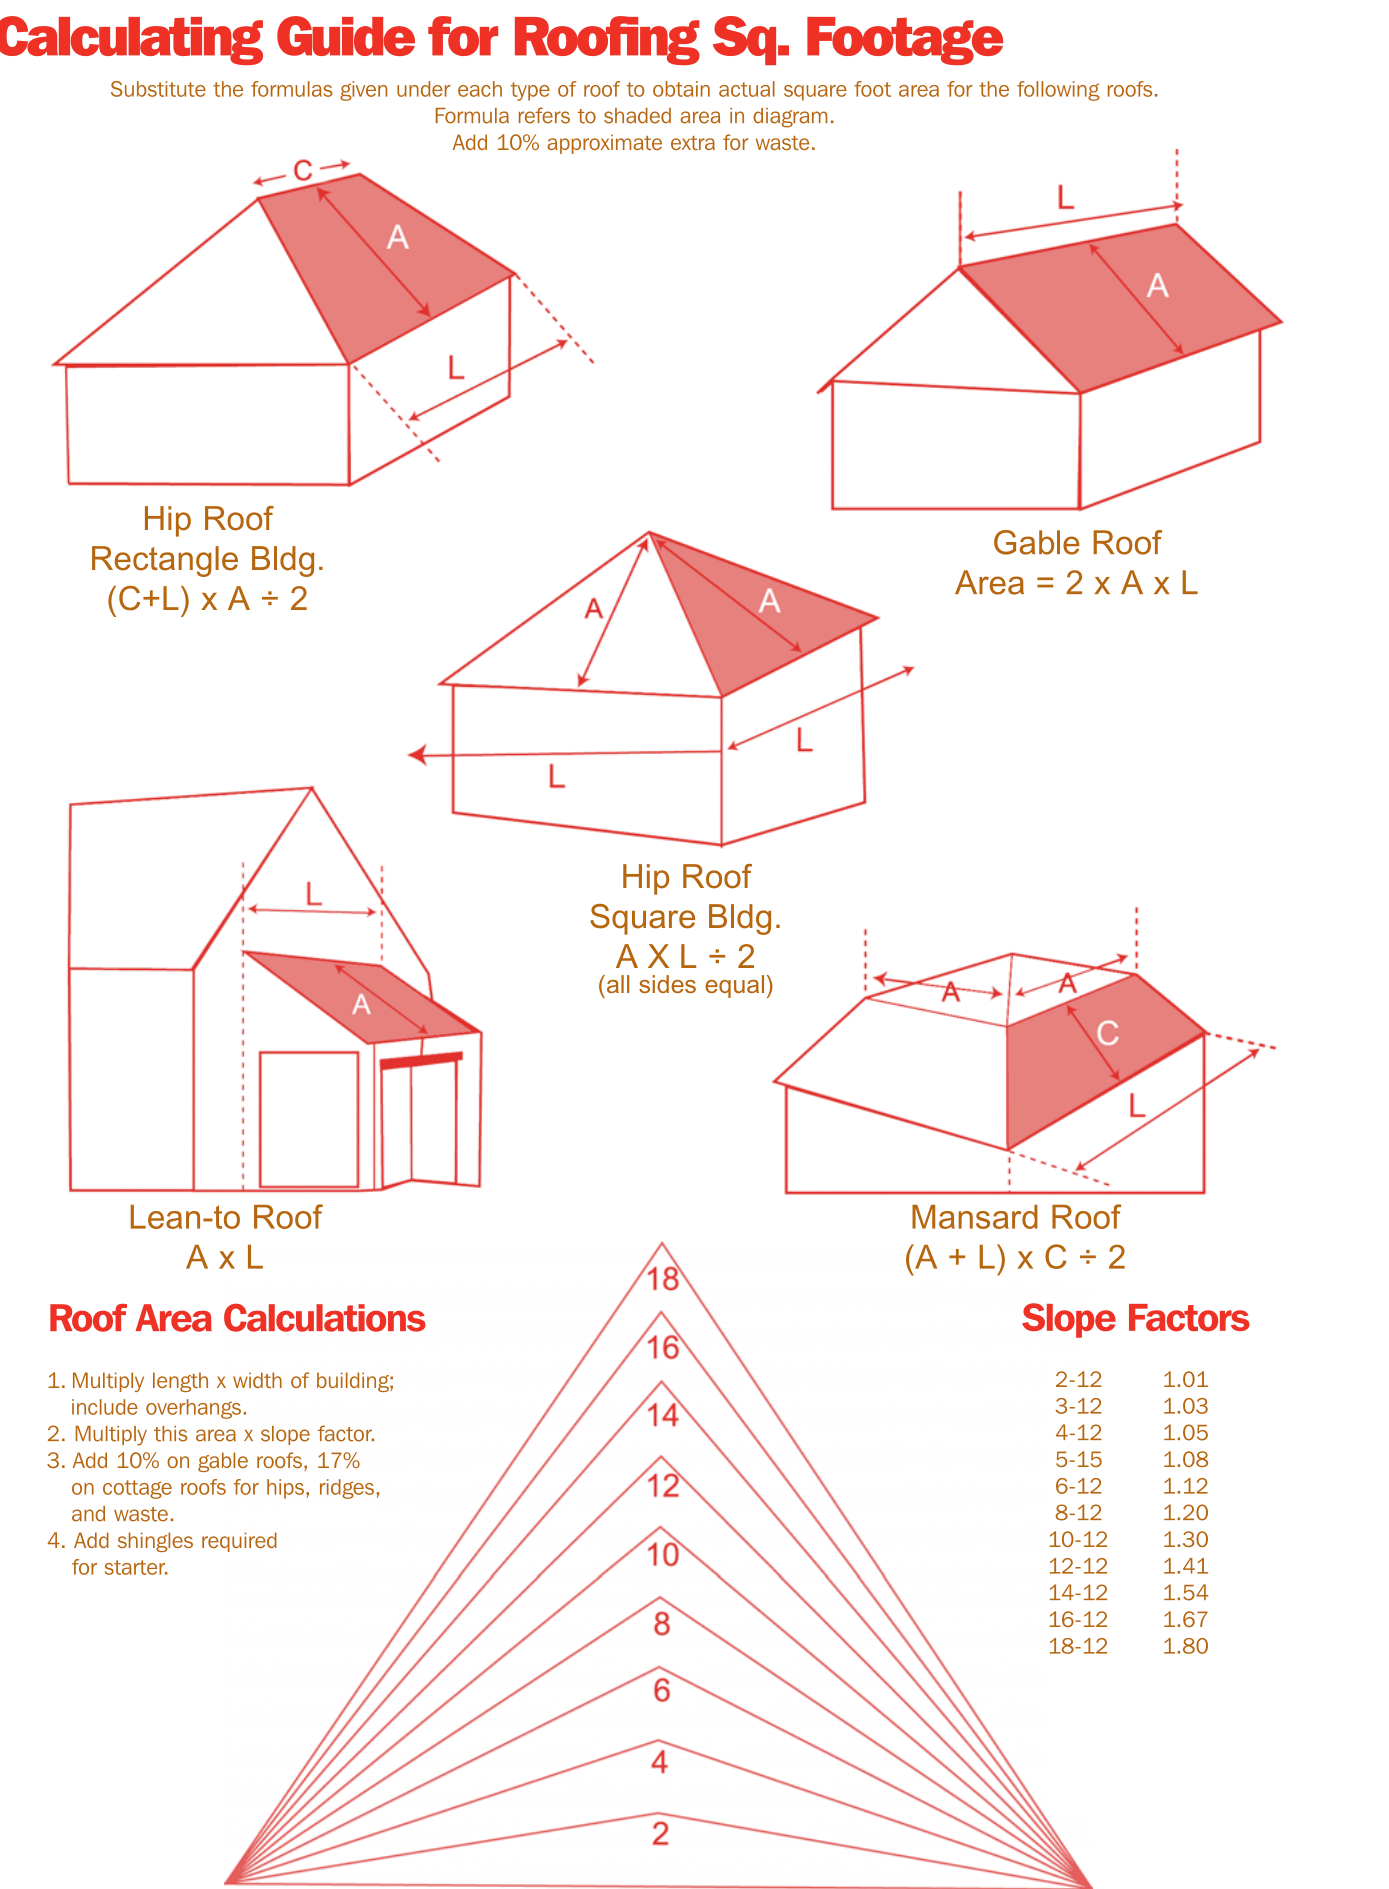 Bell shaped roof how to get square foot